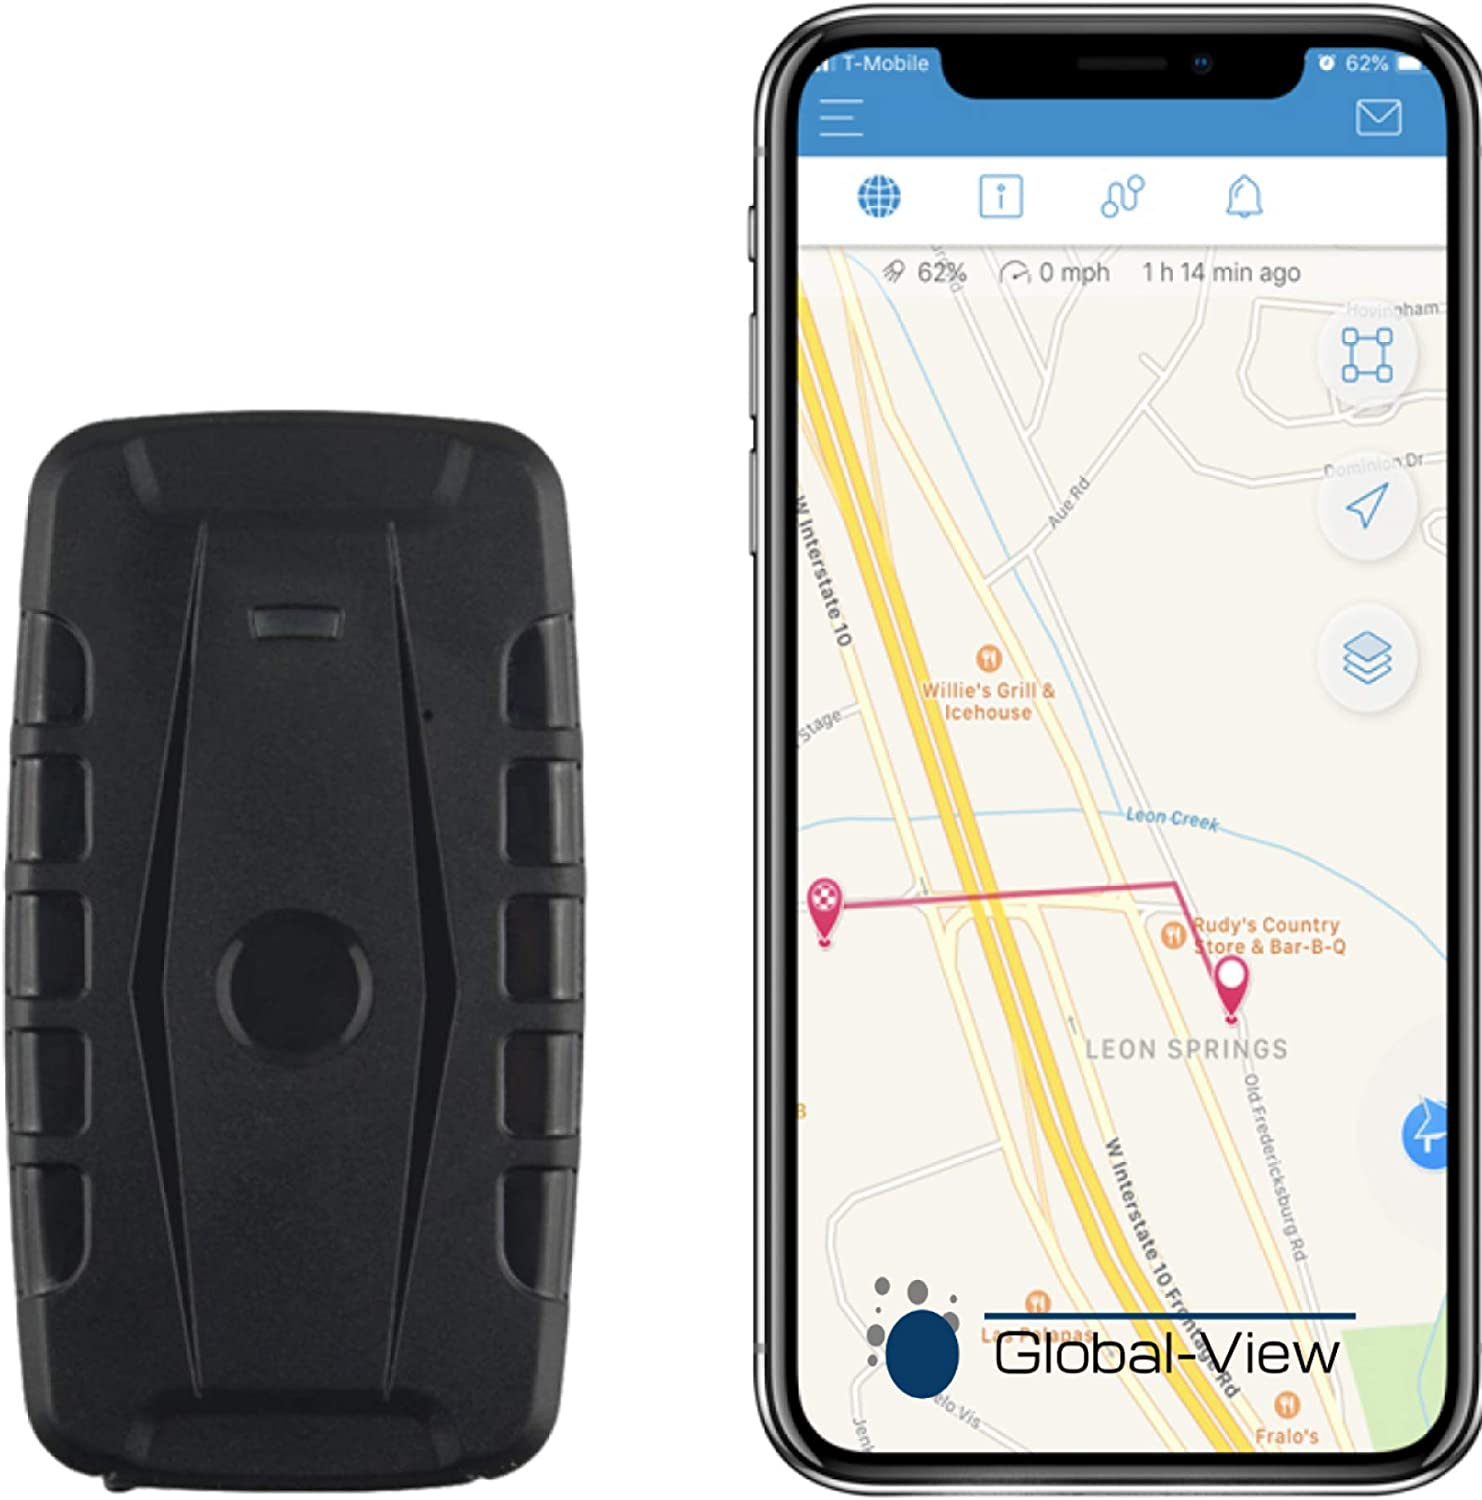 https://safesac.net/wp-content/uploads/2019/09/Global-View.Net-Hidden-Magnetic-GPS-Vehicle-964x1024.jpg